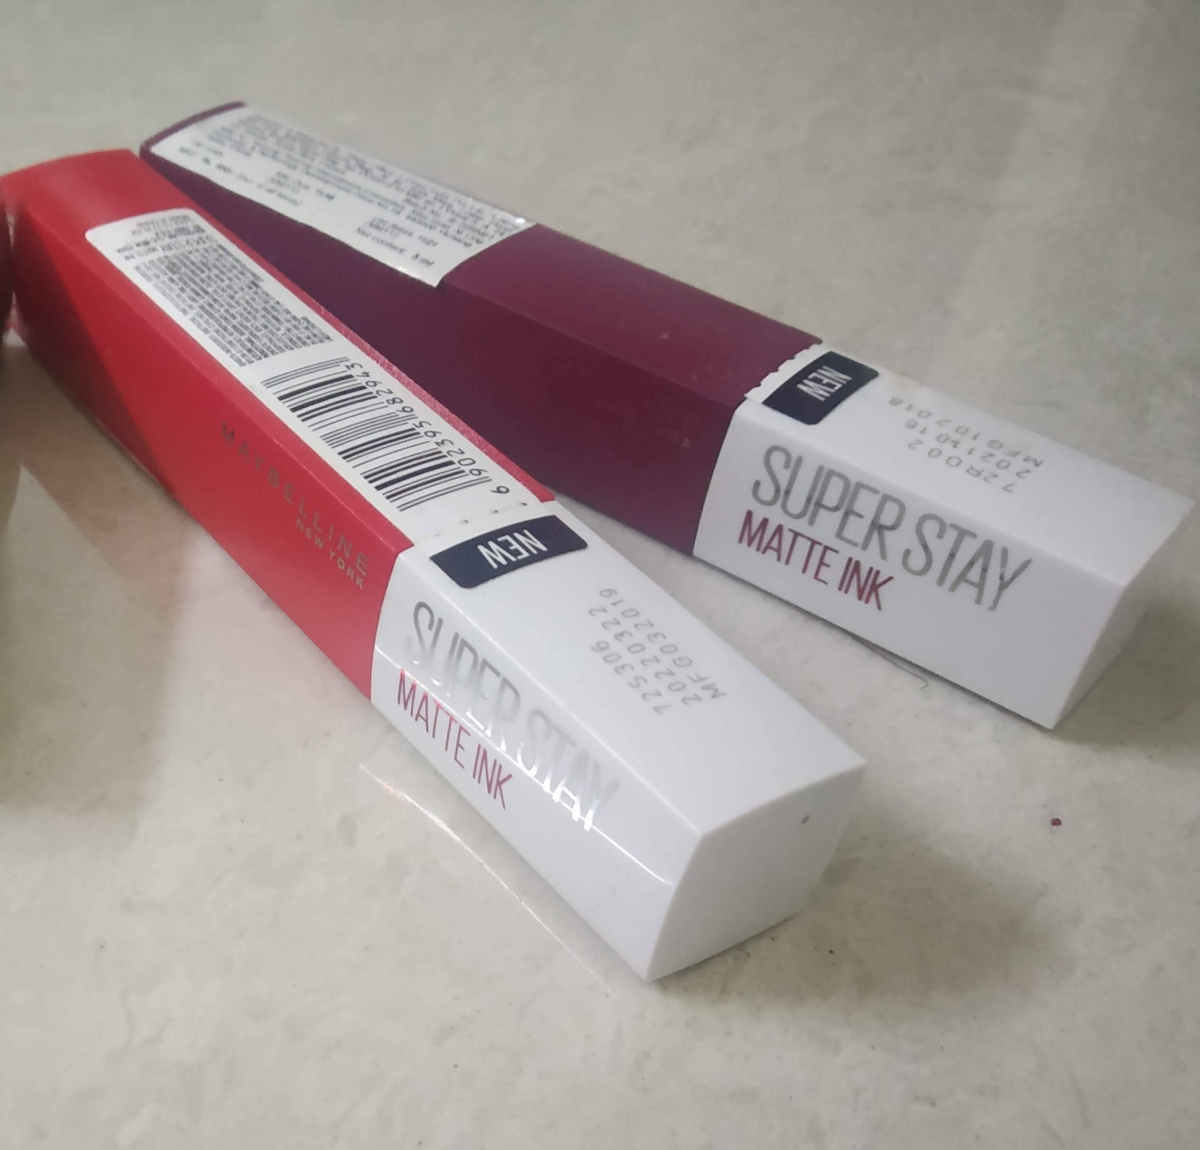 Maybelline New York Super Stay Matte Ink Liquid Lipstick – Review and Swatches